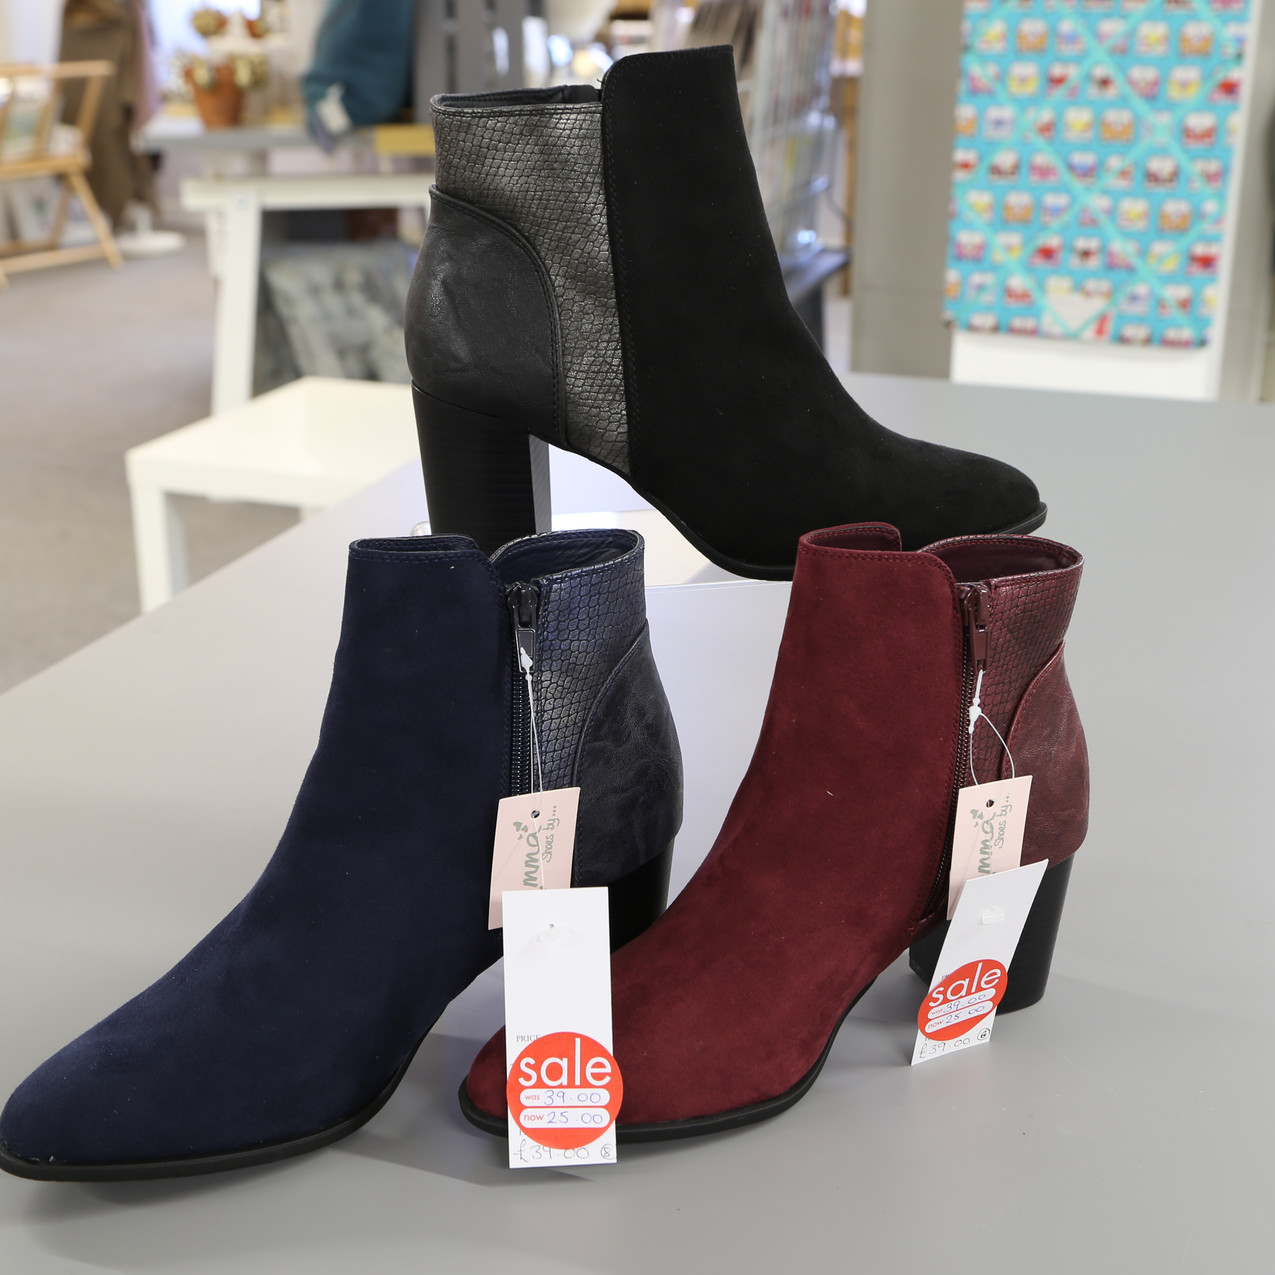 Boots from £39 to £25